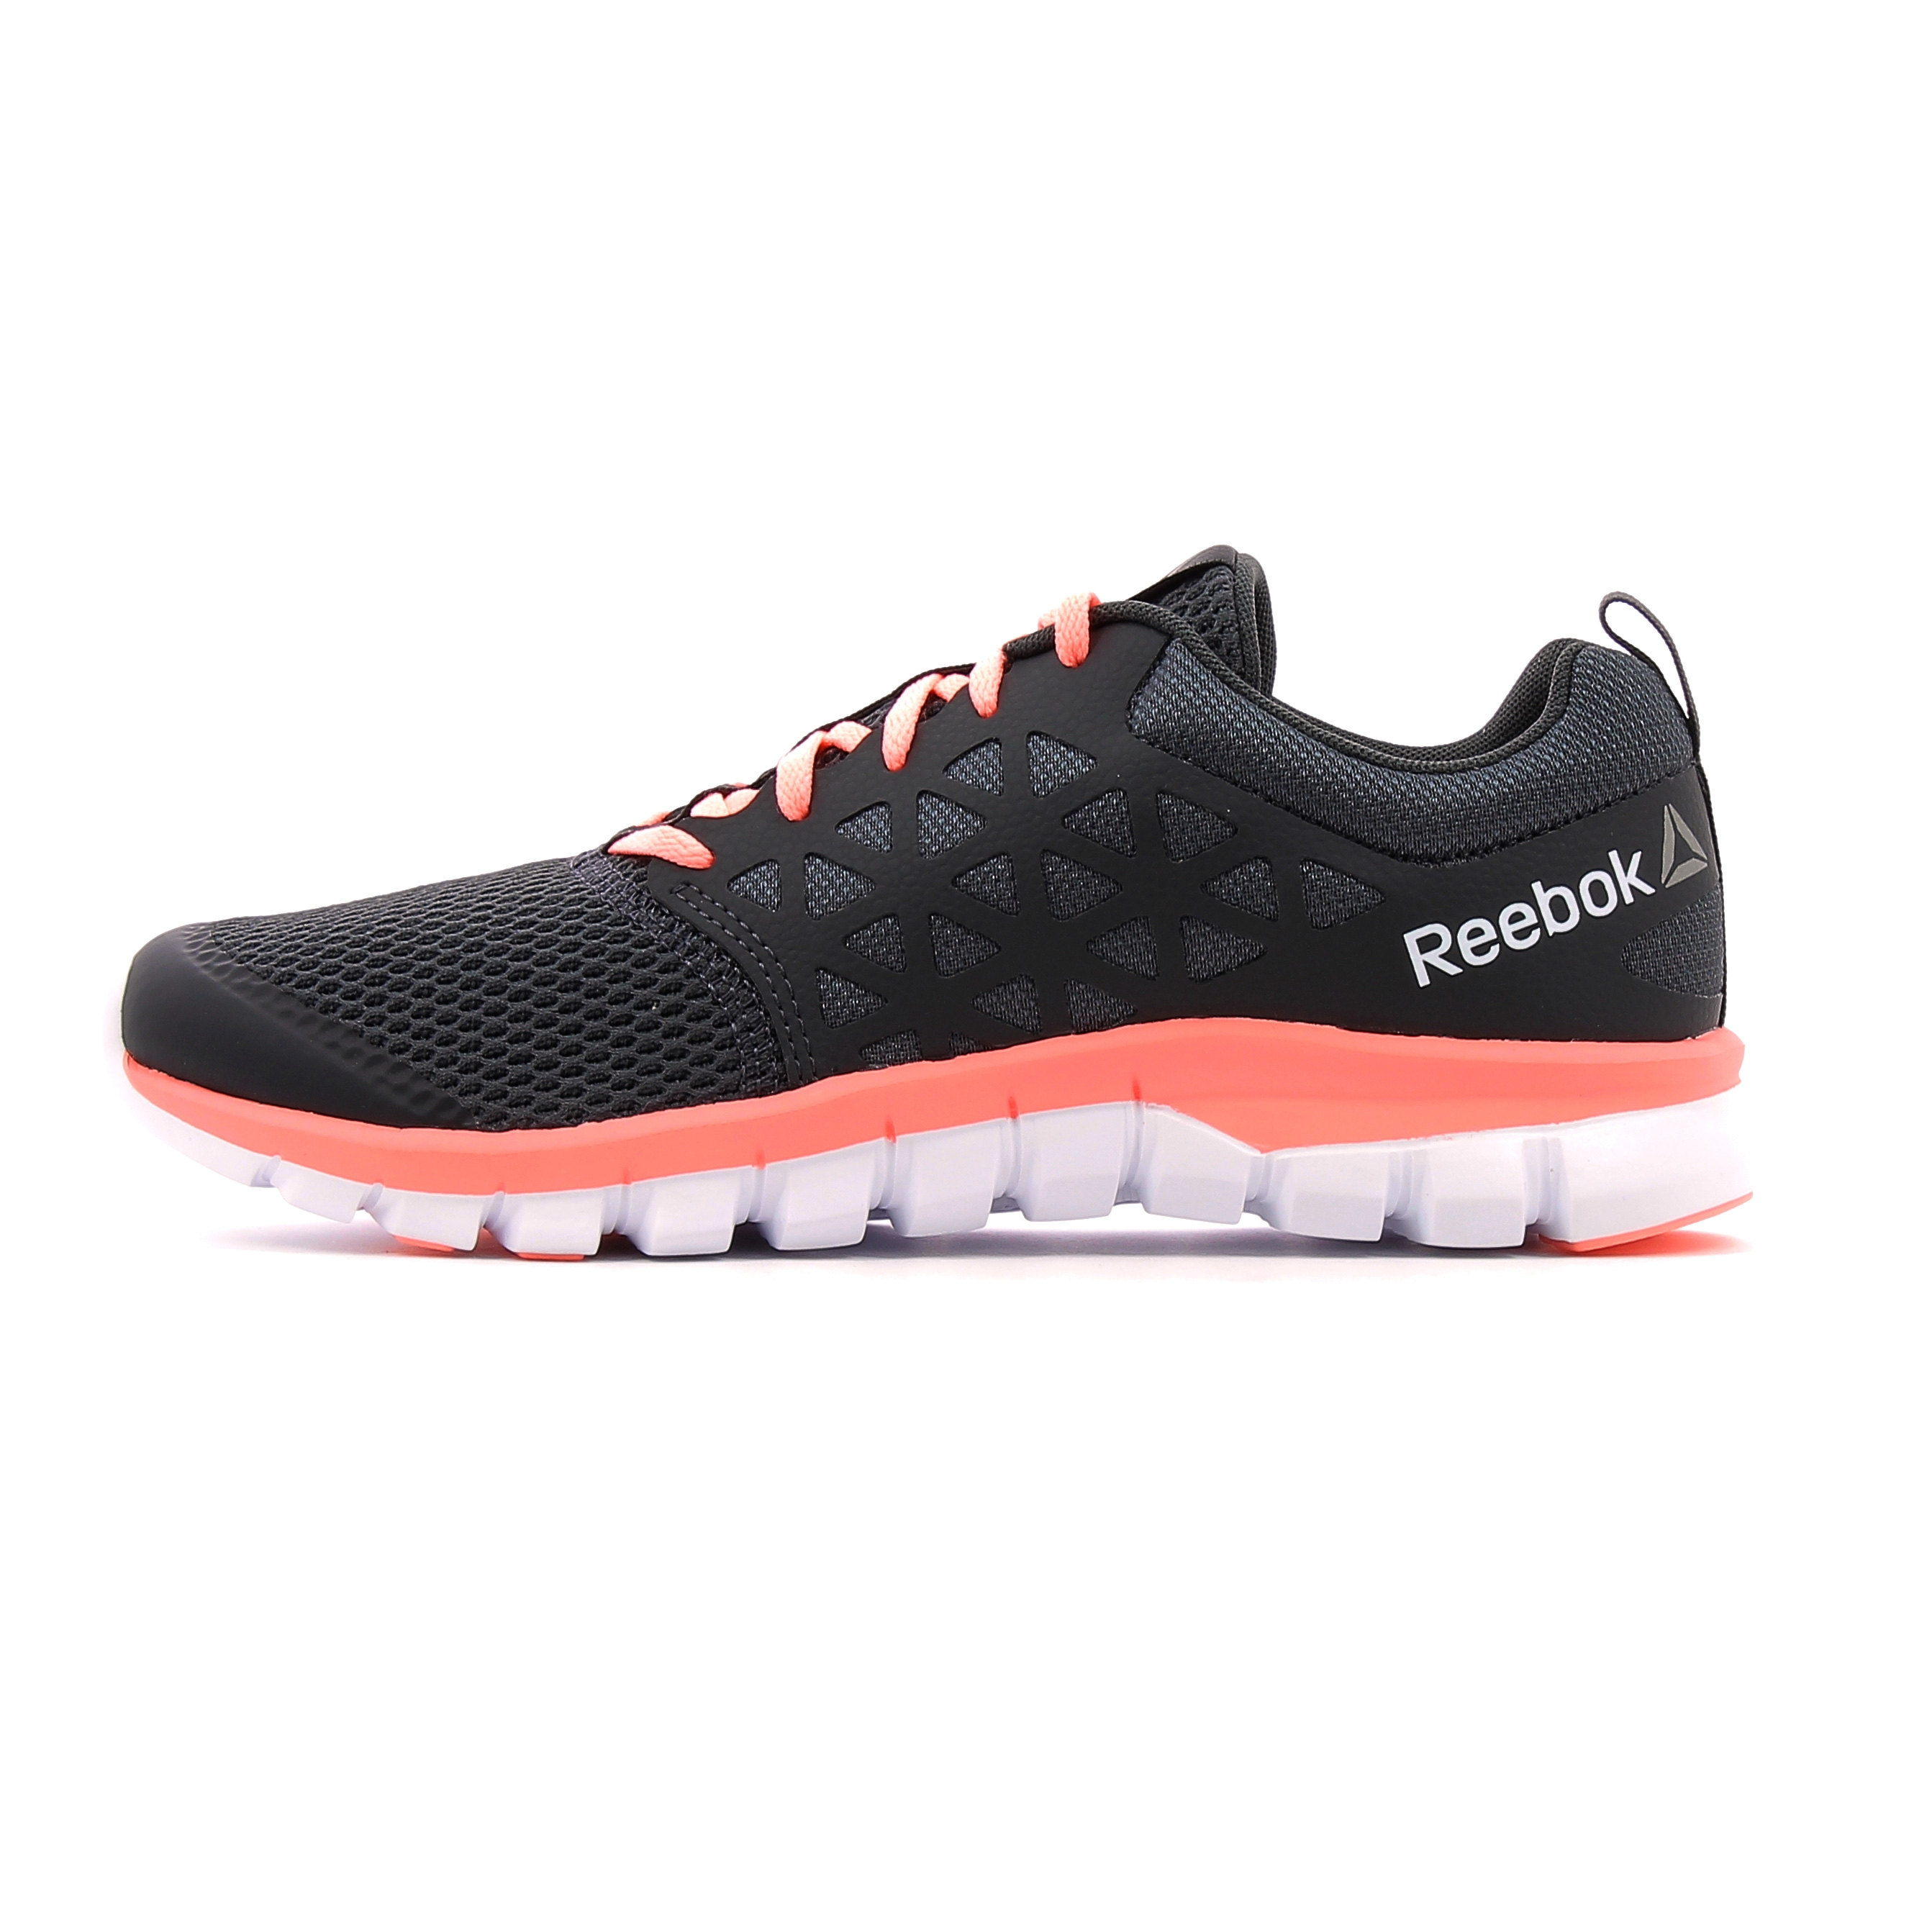 Chaussures de running Reebok Sublite XT Cushion 2.0 MT